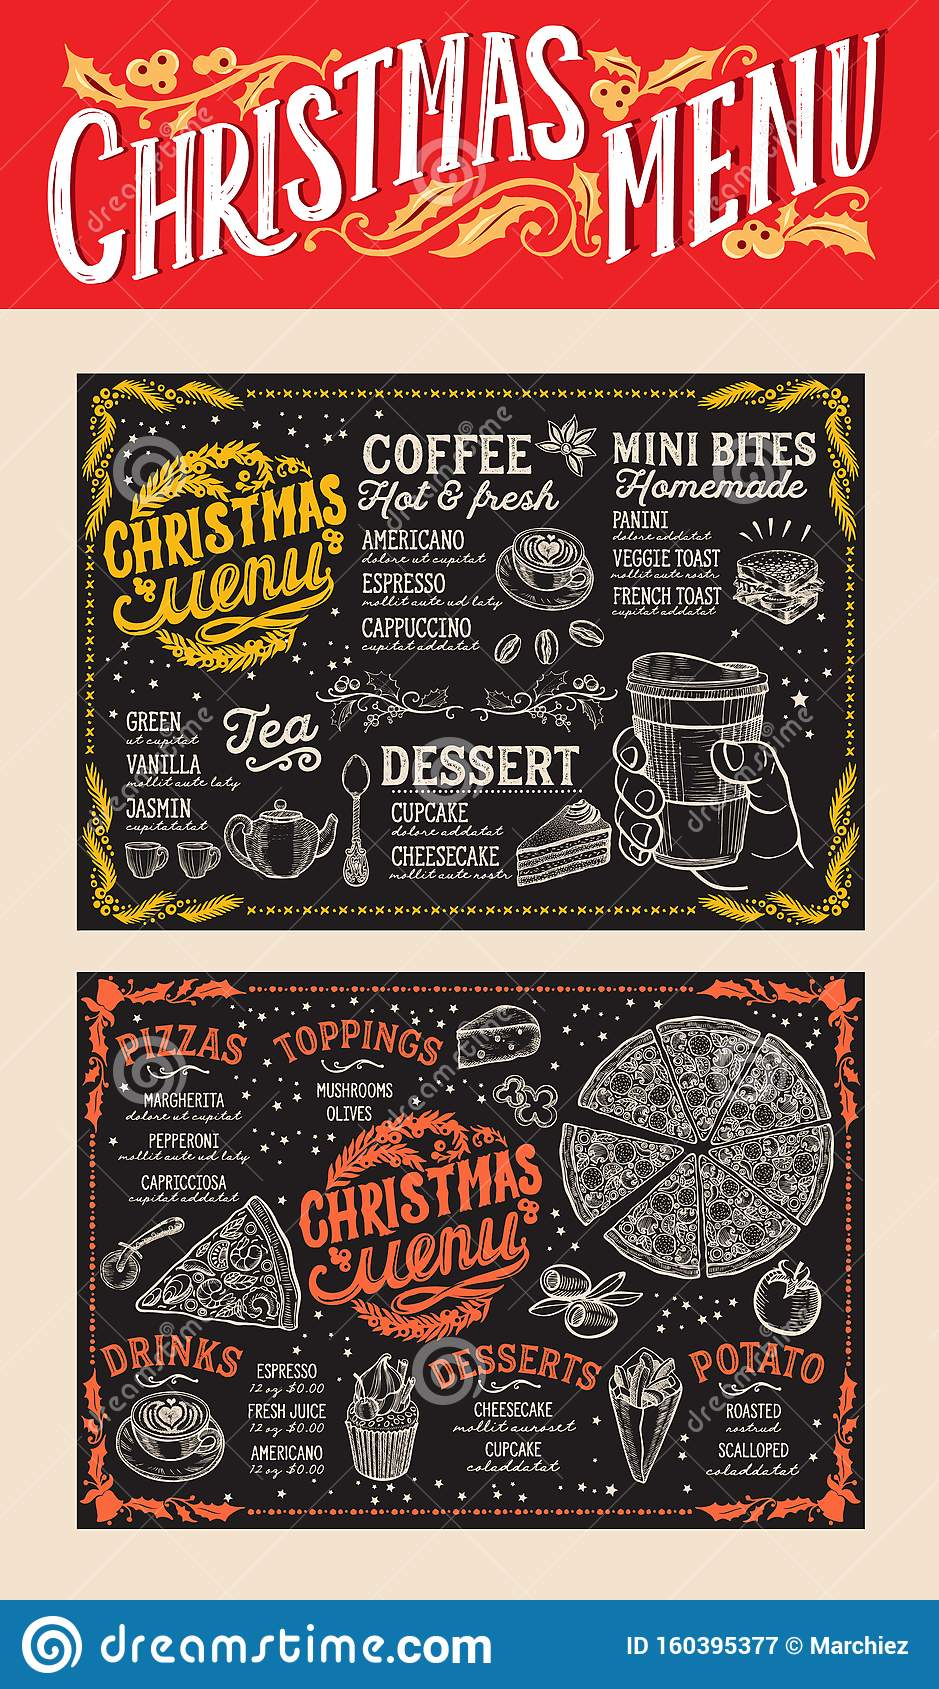 Holiday Menu Template from thumbs.dreamstime.com